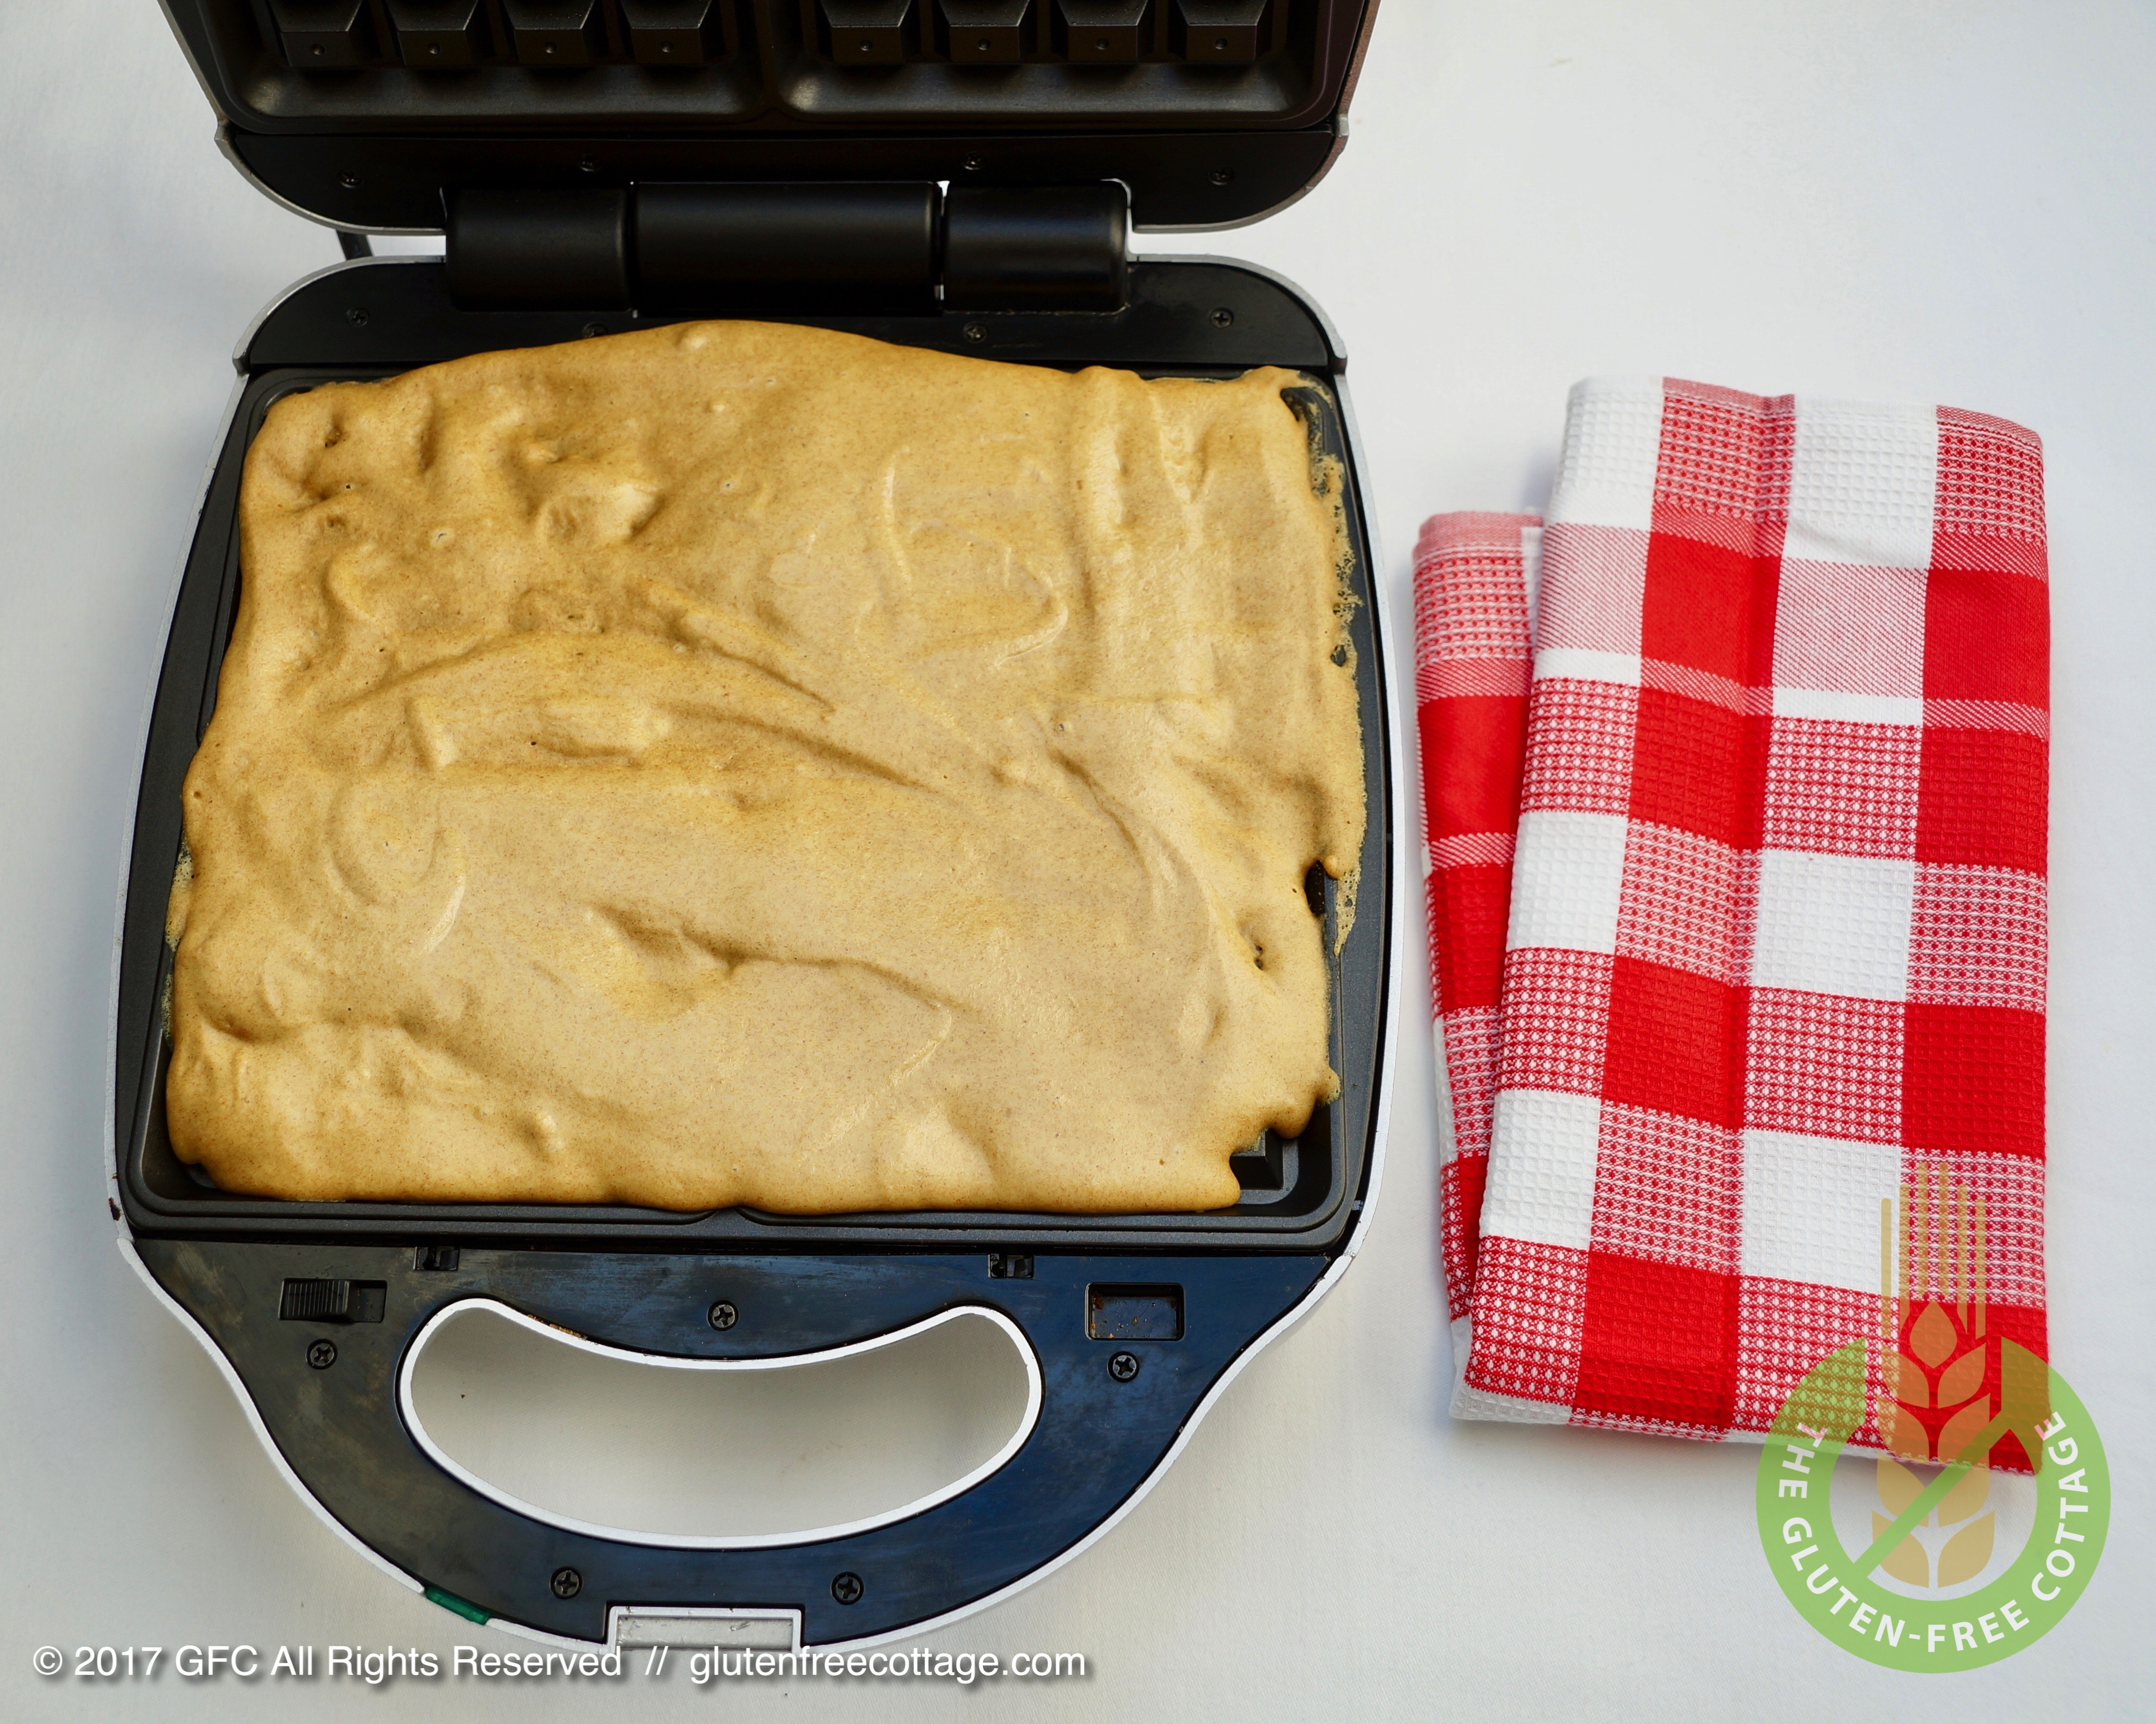 Pour gluten-free batter into waffle maker and let bake (gluten-free waffles).